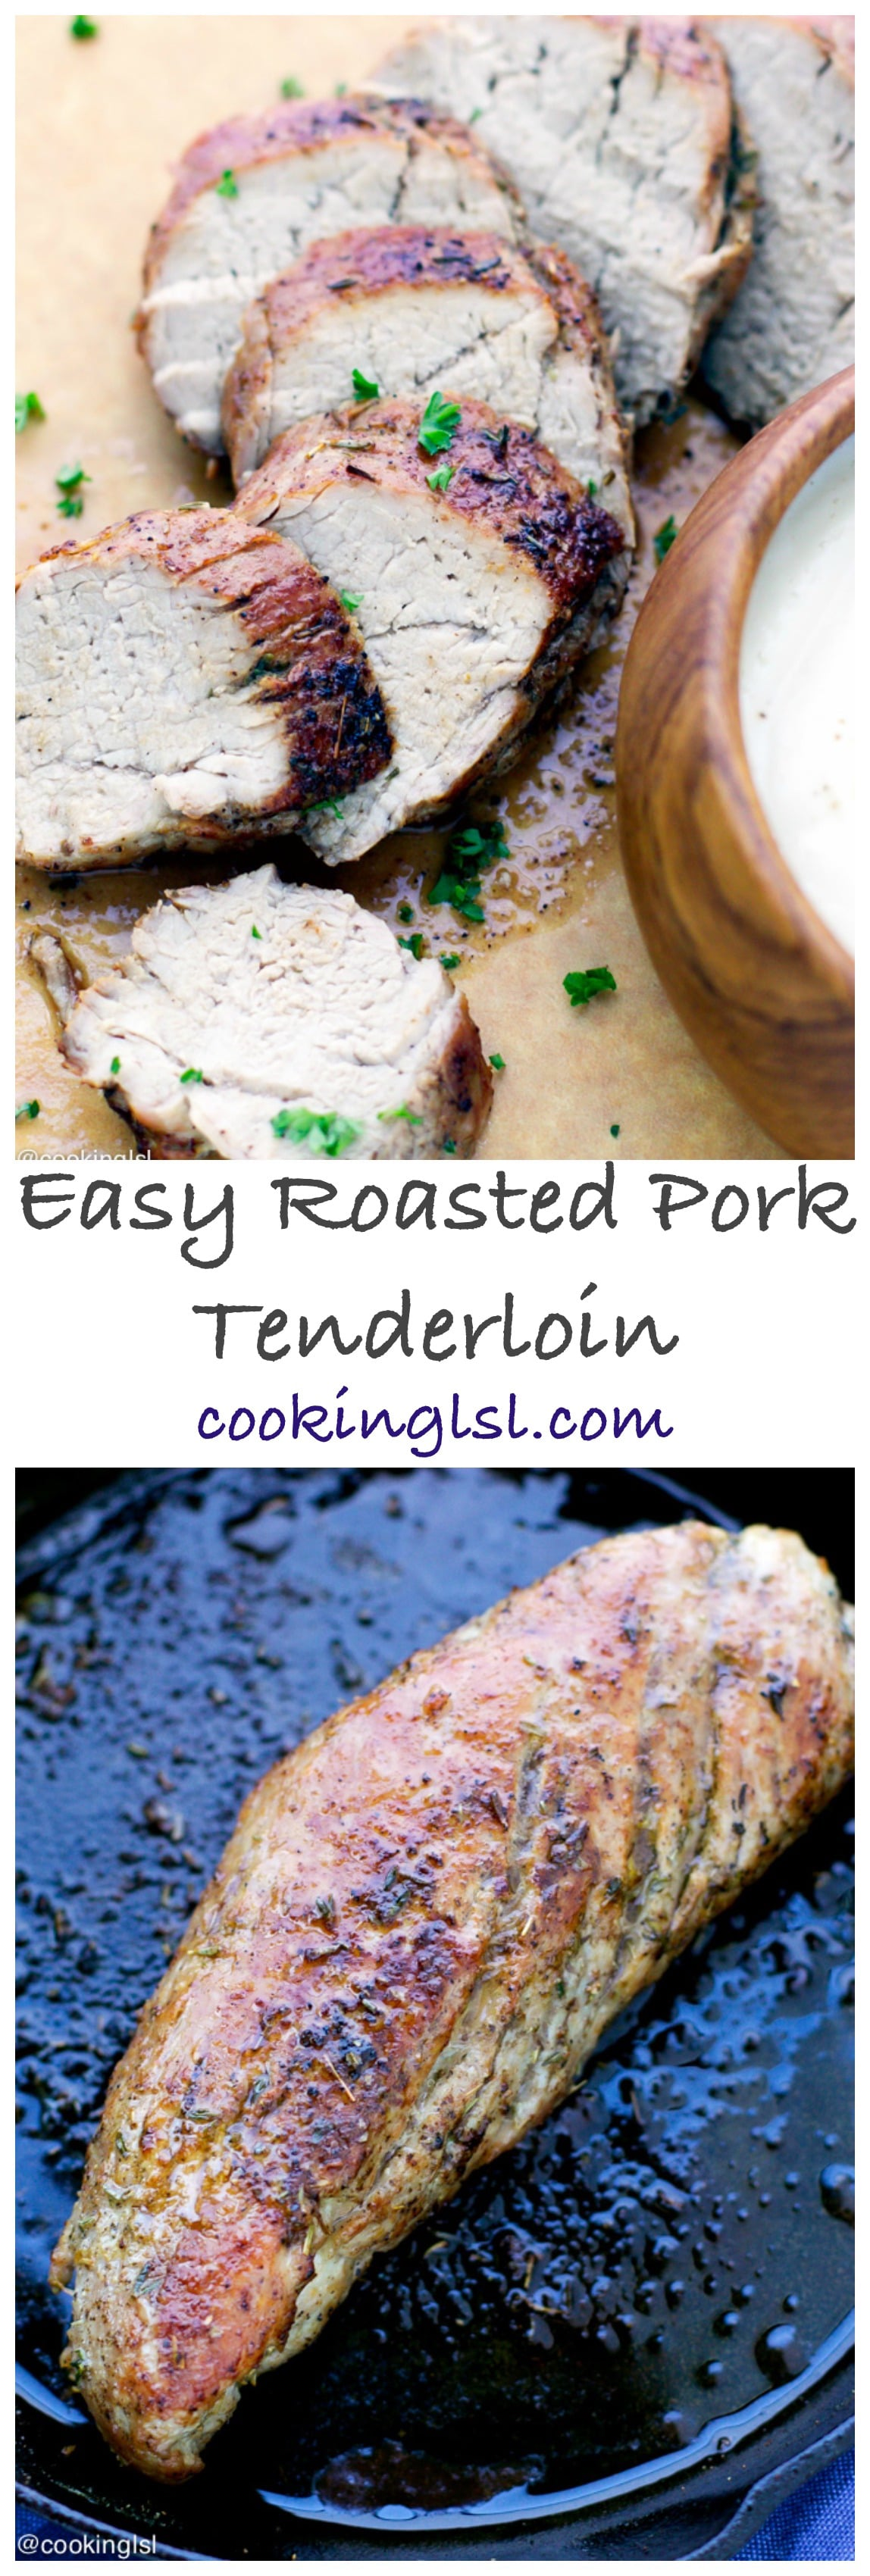 Easy-Roasted-Pork-Tenderloin